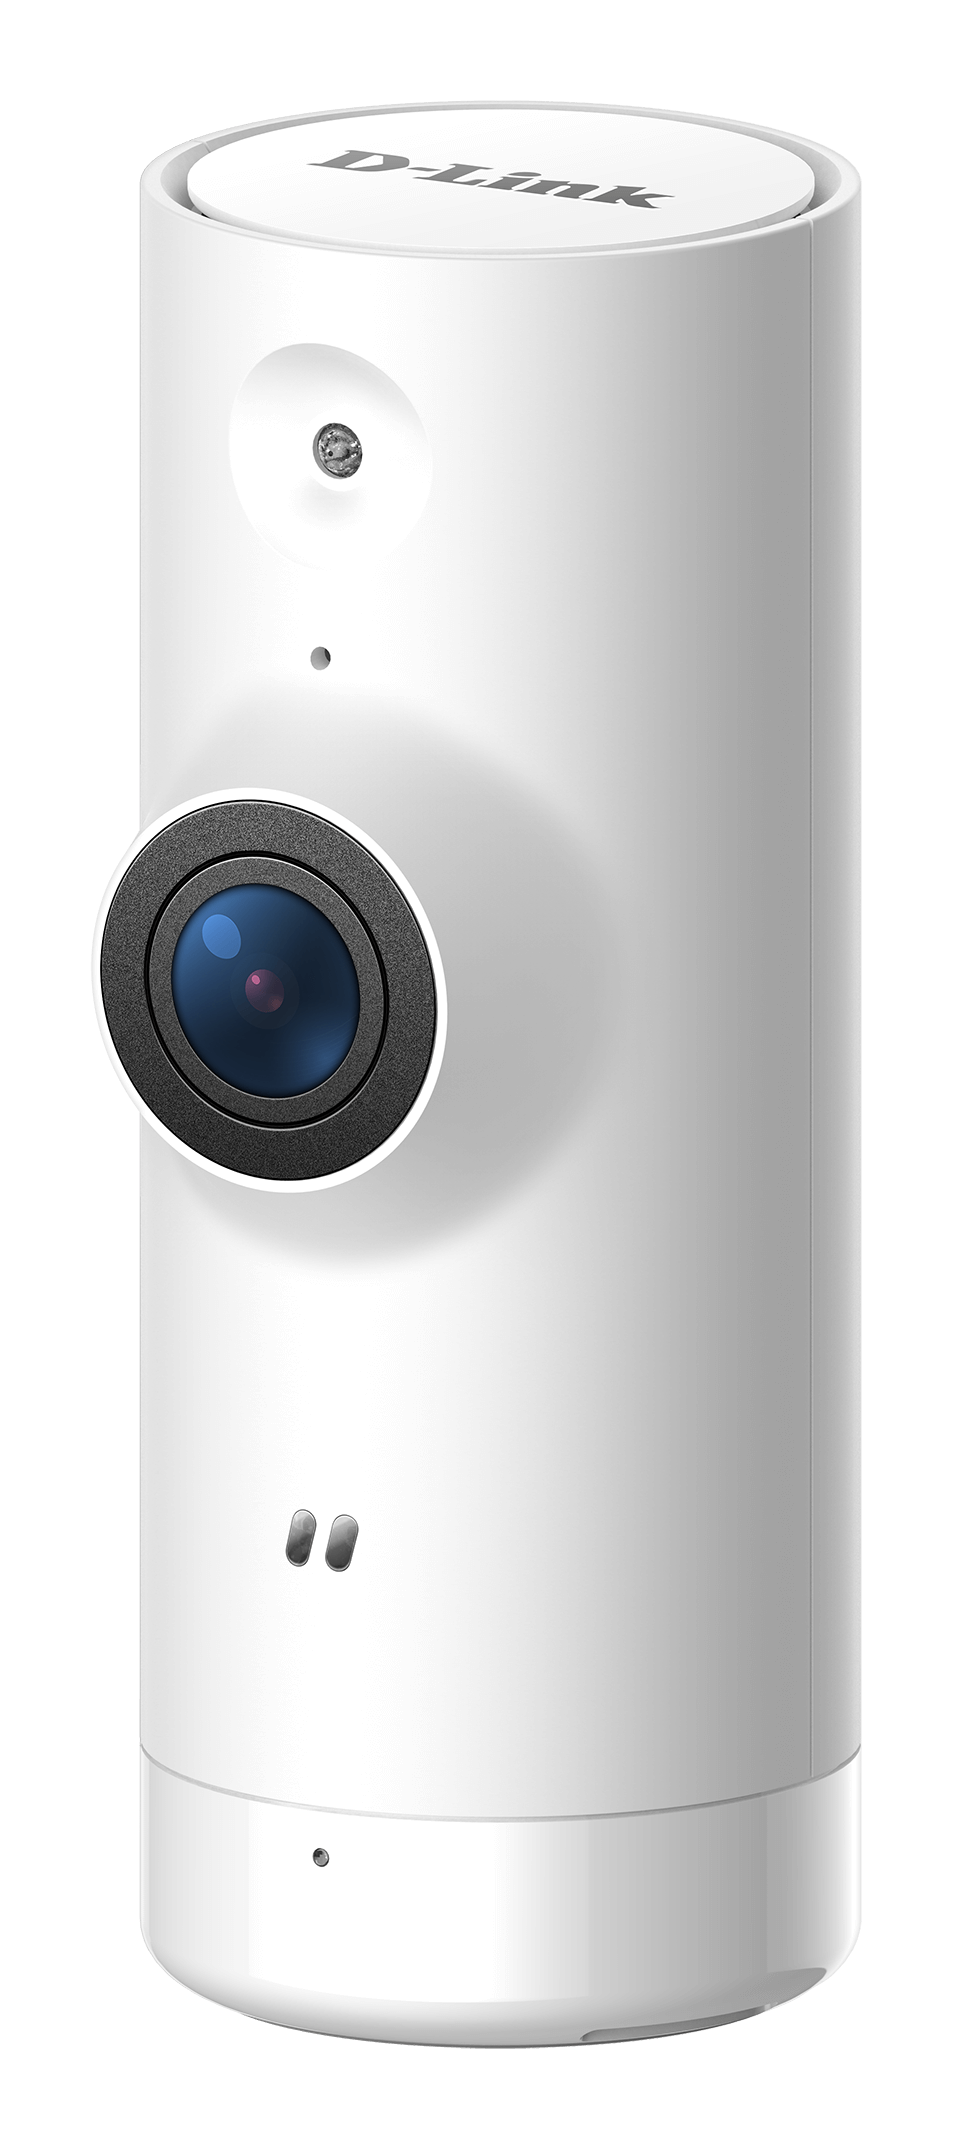 DCS-8000LHV2 Mini Full HD Wi-Fi Camera - Left side